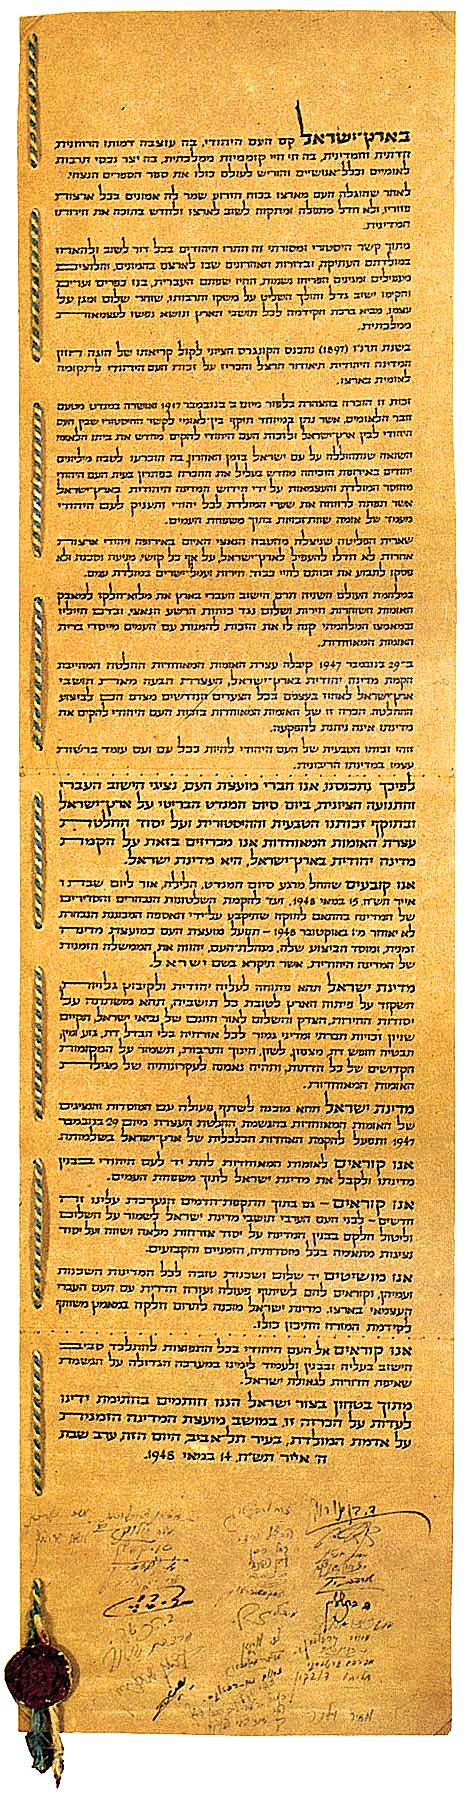 Israel_Declaration_of_Independence_t